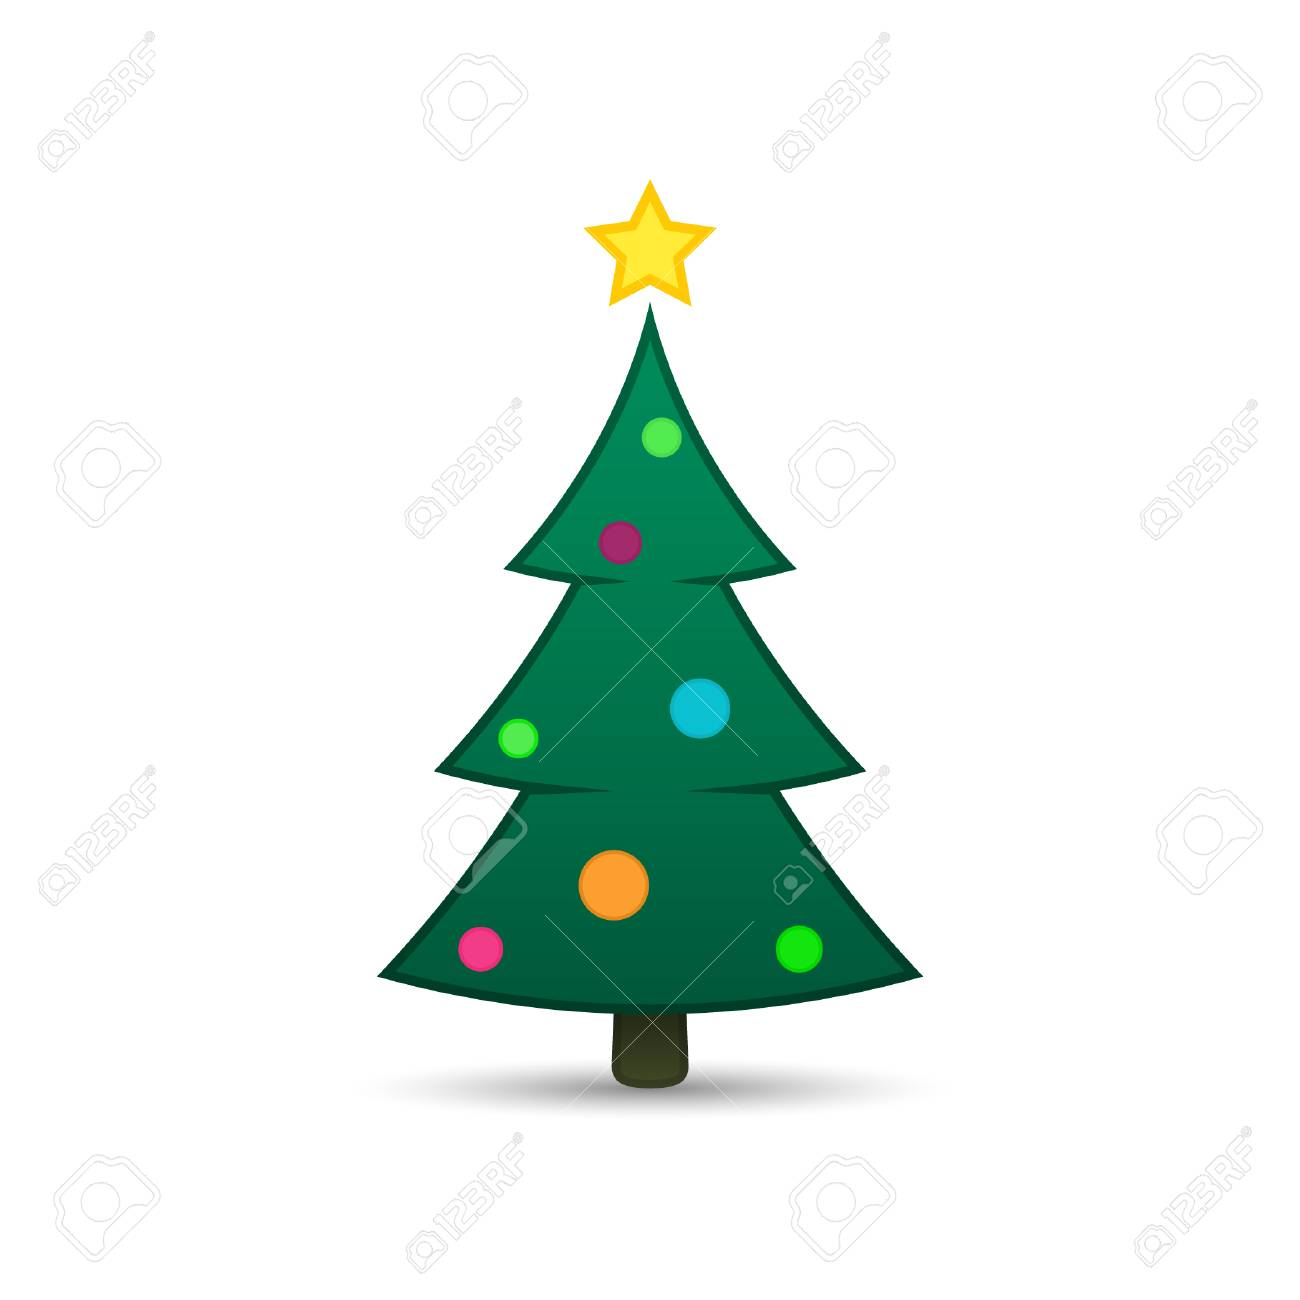 Christmas Tree Icon.Christmas Tree Icon Vector Simple Design Green Fir Tree With